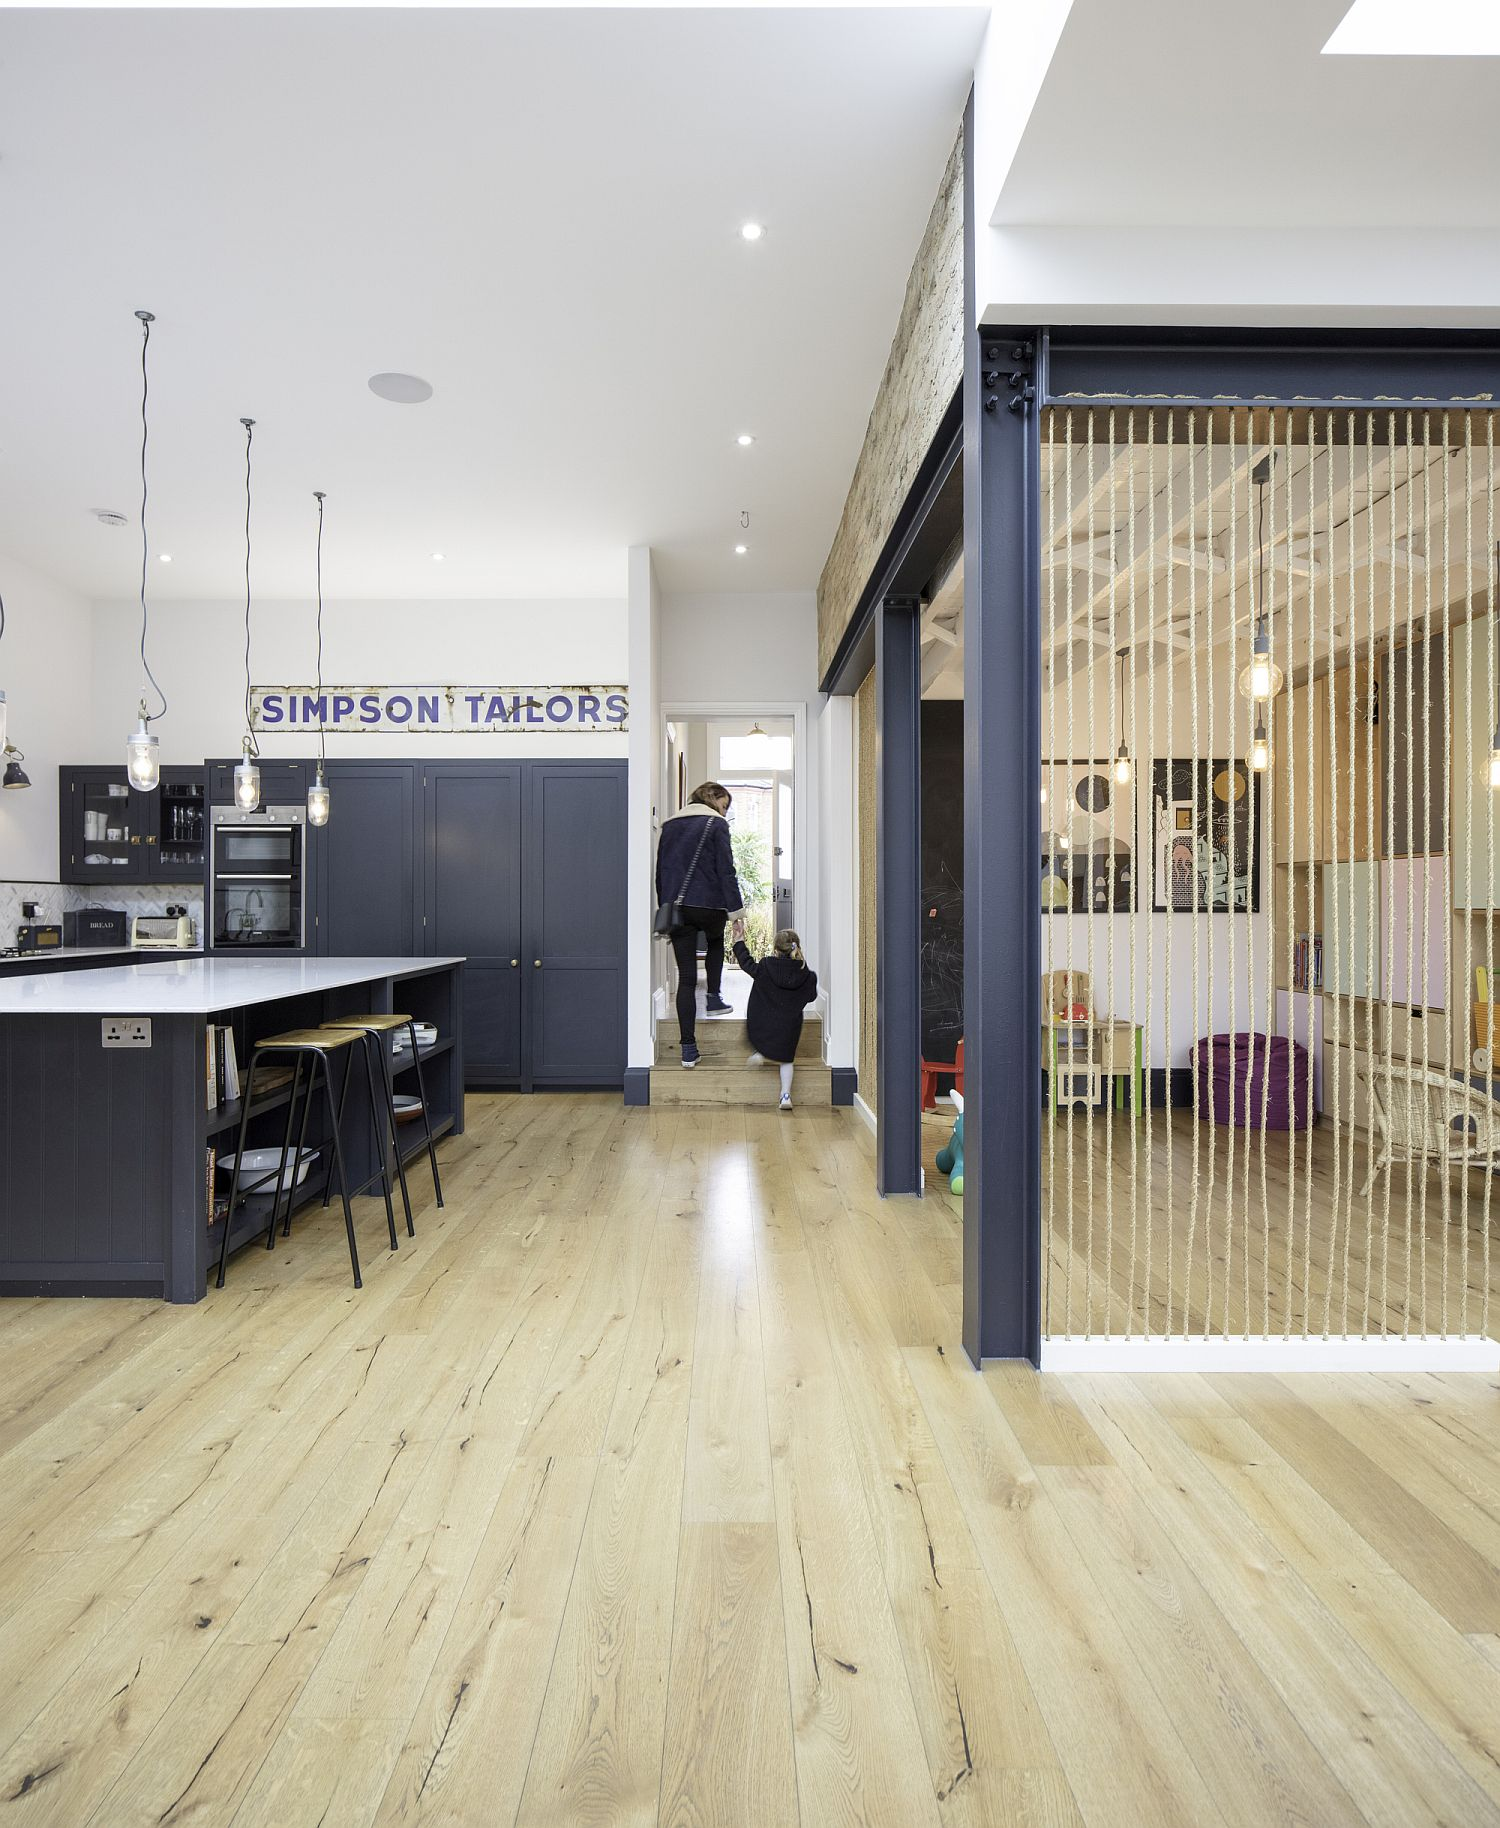 Kitchen of the converted London hom feels like an extension of the living room